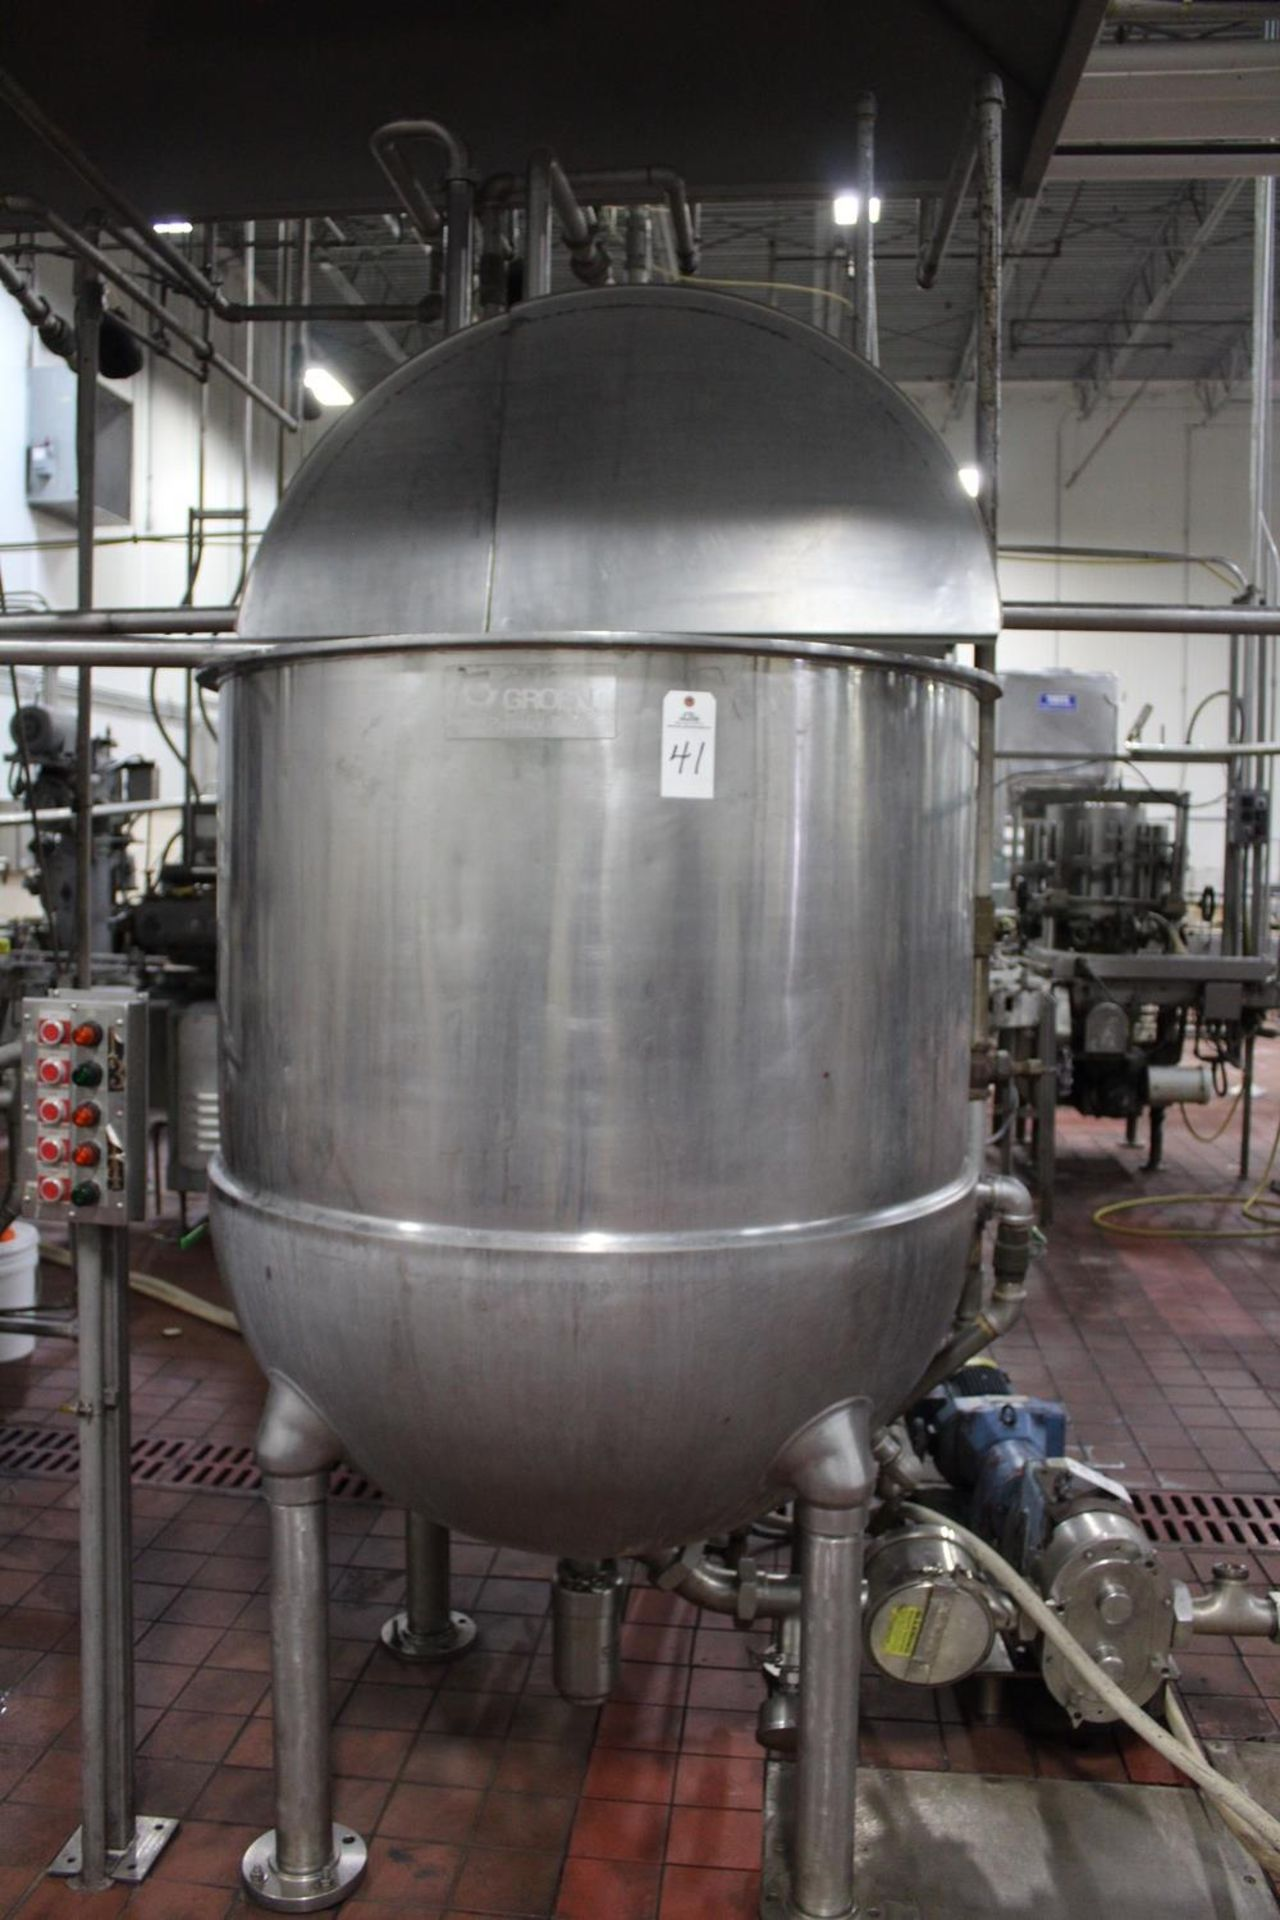 Lot 41 - Groen 300 Gallon Jacketed Scrape Surface Twin Agitated Kettle, Incl | Subj to Bulk | Rig Fee: $450